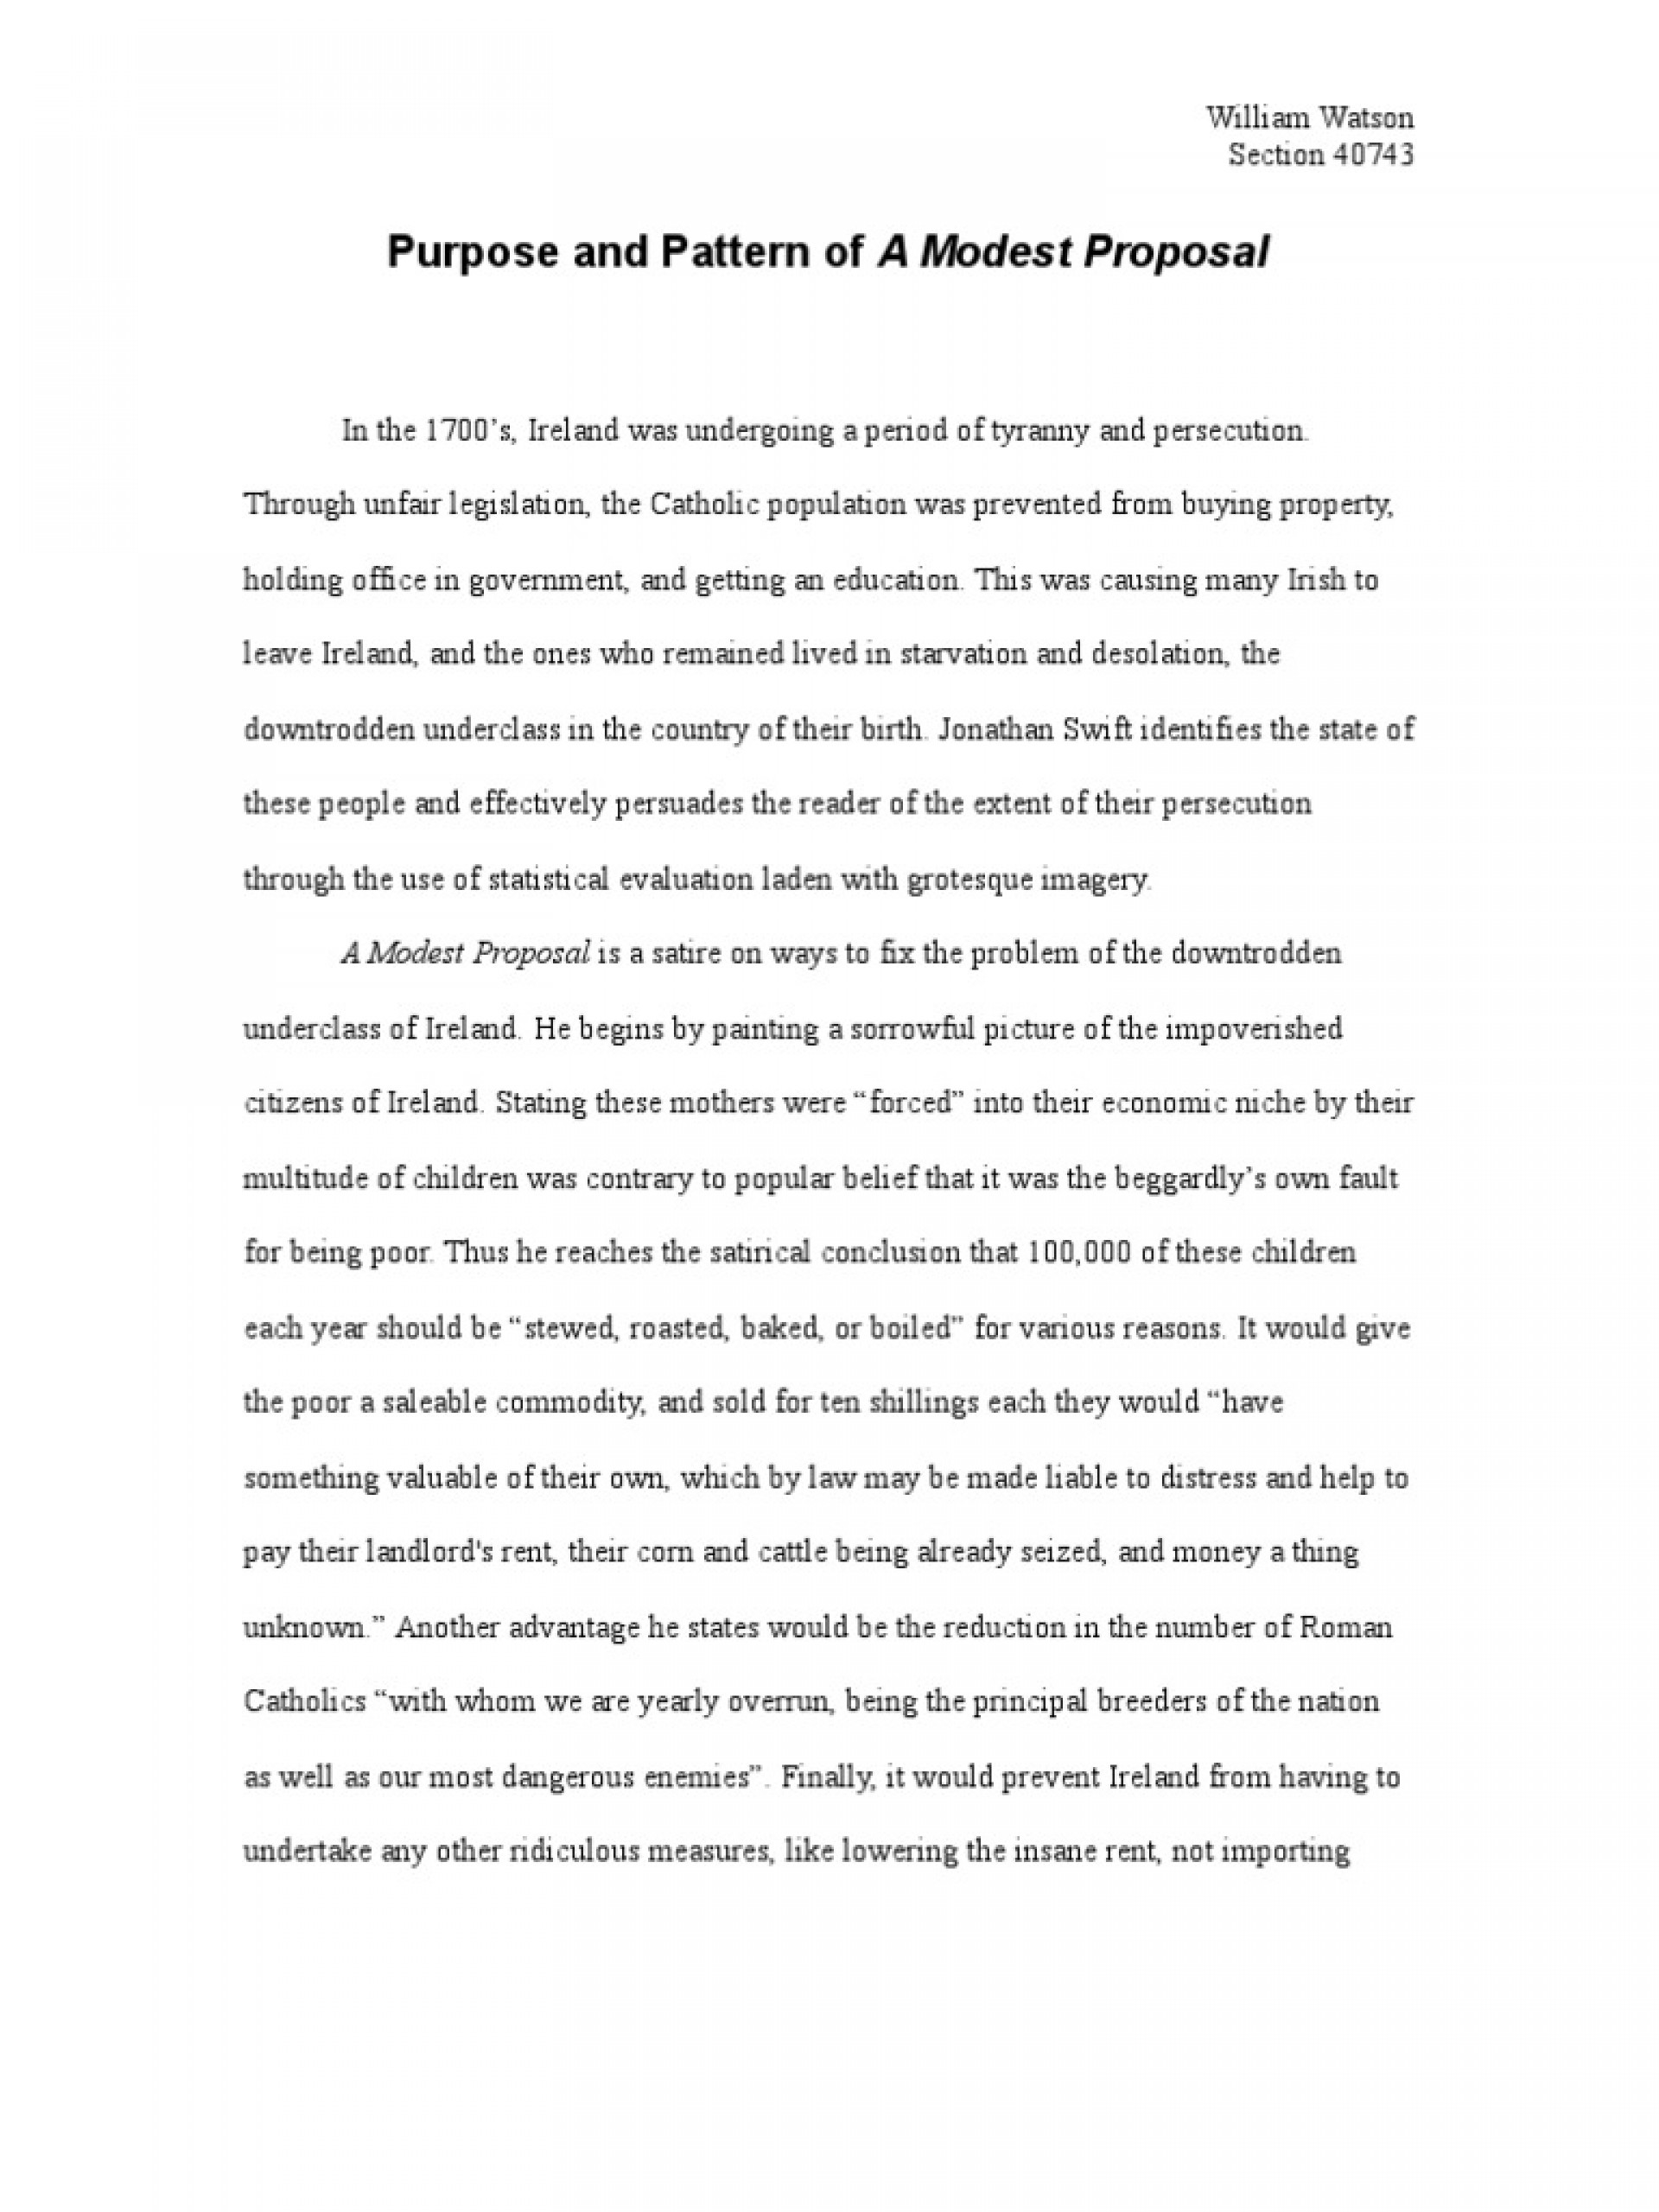 029 Satirical Essay Topics Example Worksheet Modest Proposal Answers Grass Frightening Satire On Obesity For College 111 1920